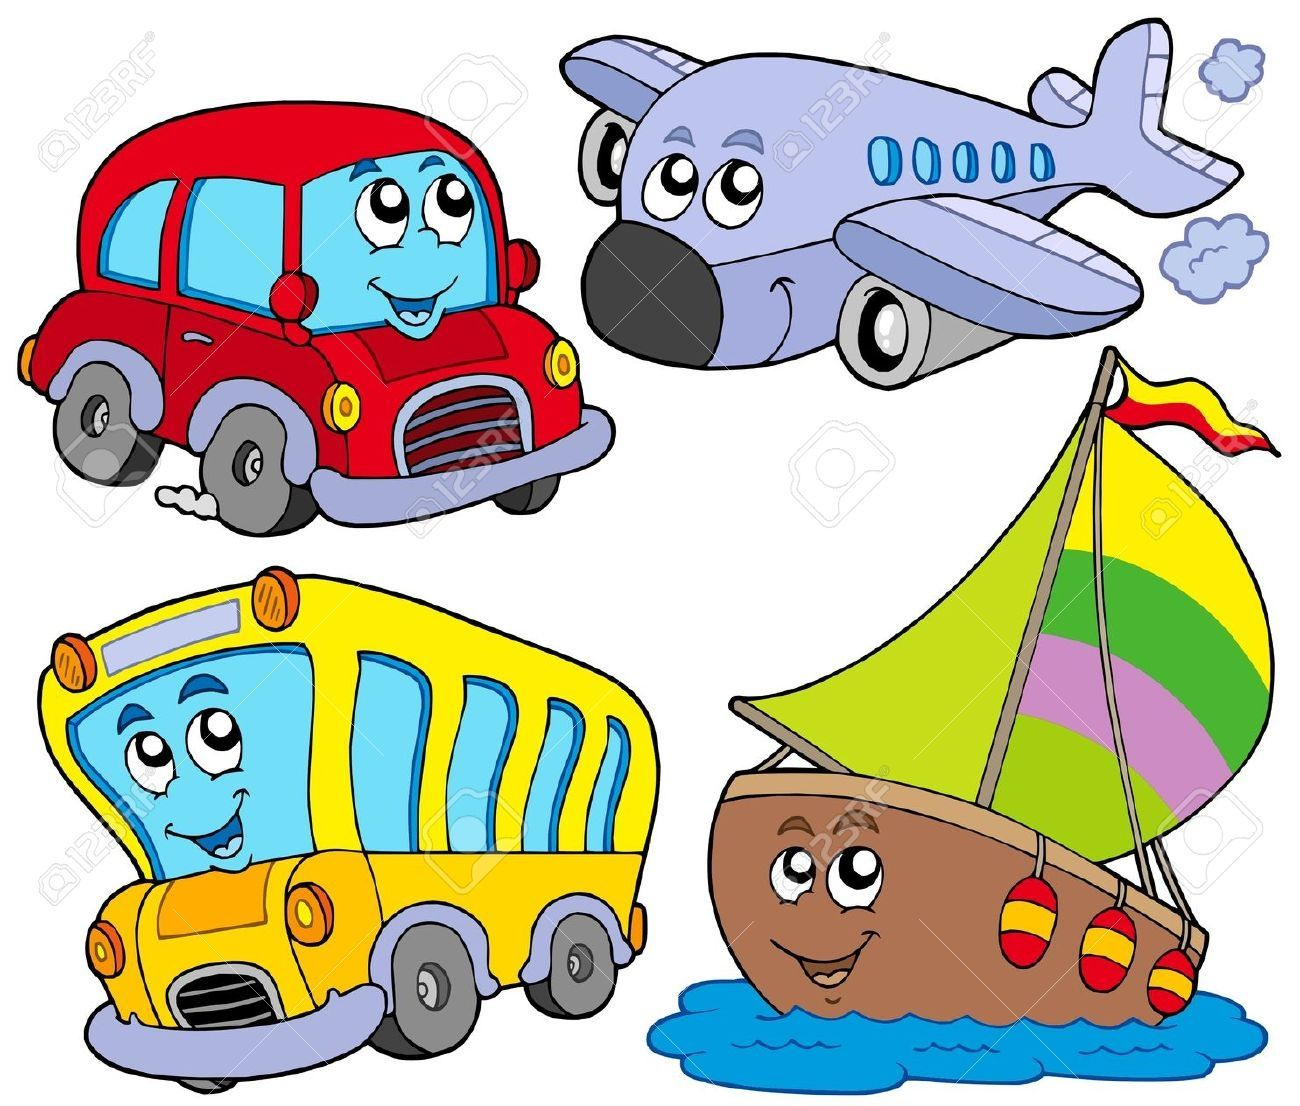 Clipart images means image freeuse library 1300x1106 Transportation Clipart | transportation image | Free ... image freeuse library